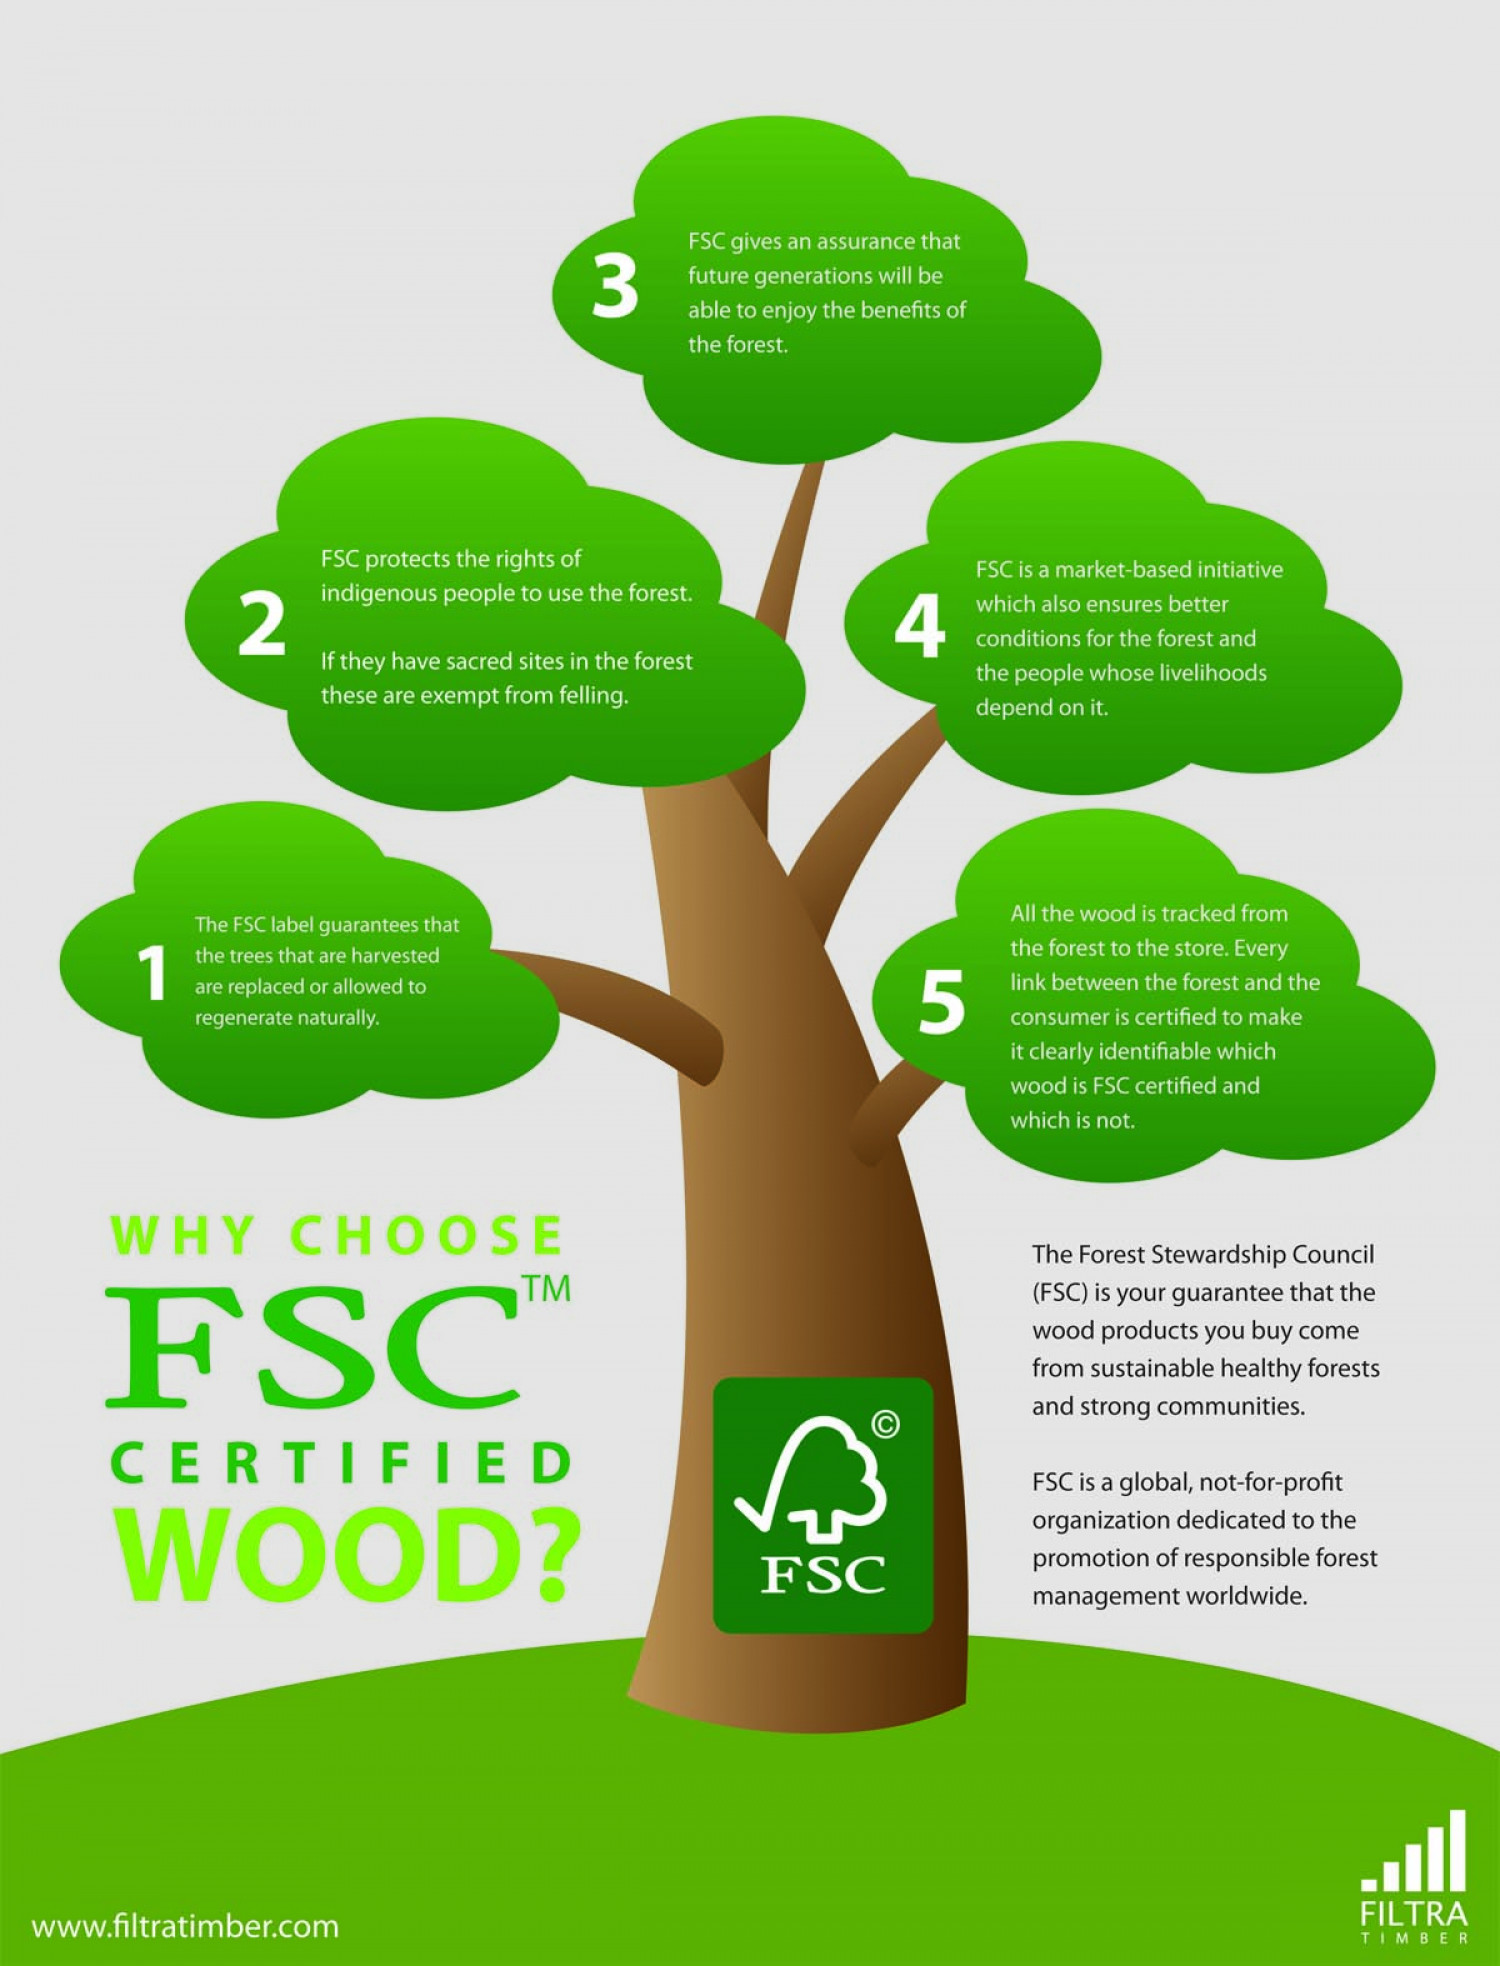 Why Choose FSC Certified Wood? (ver. 2) Infographic